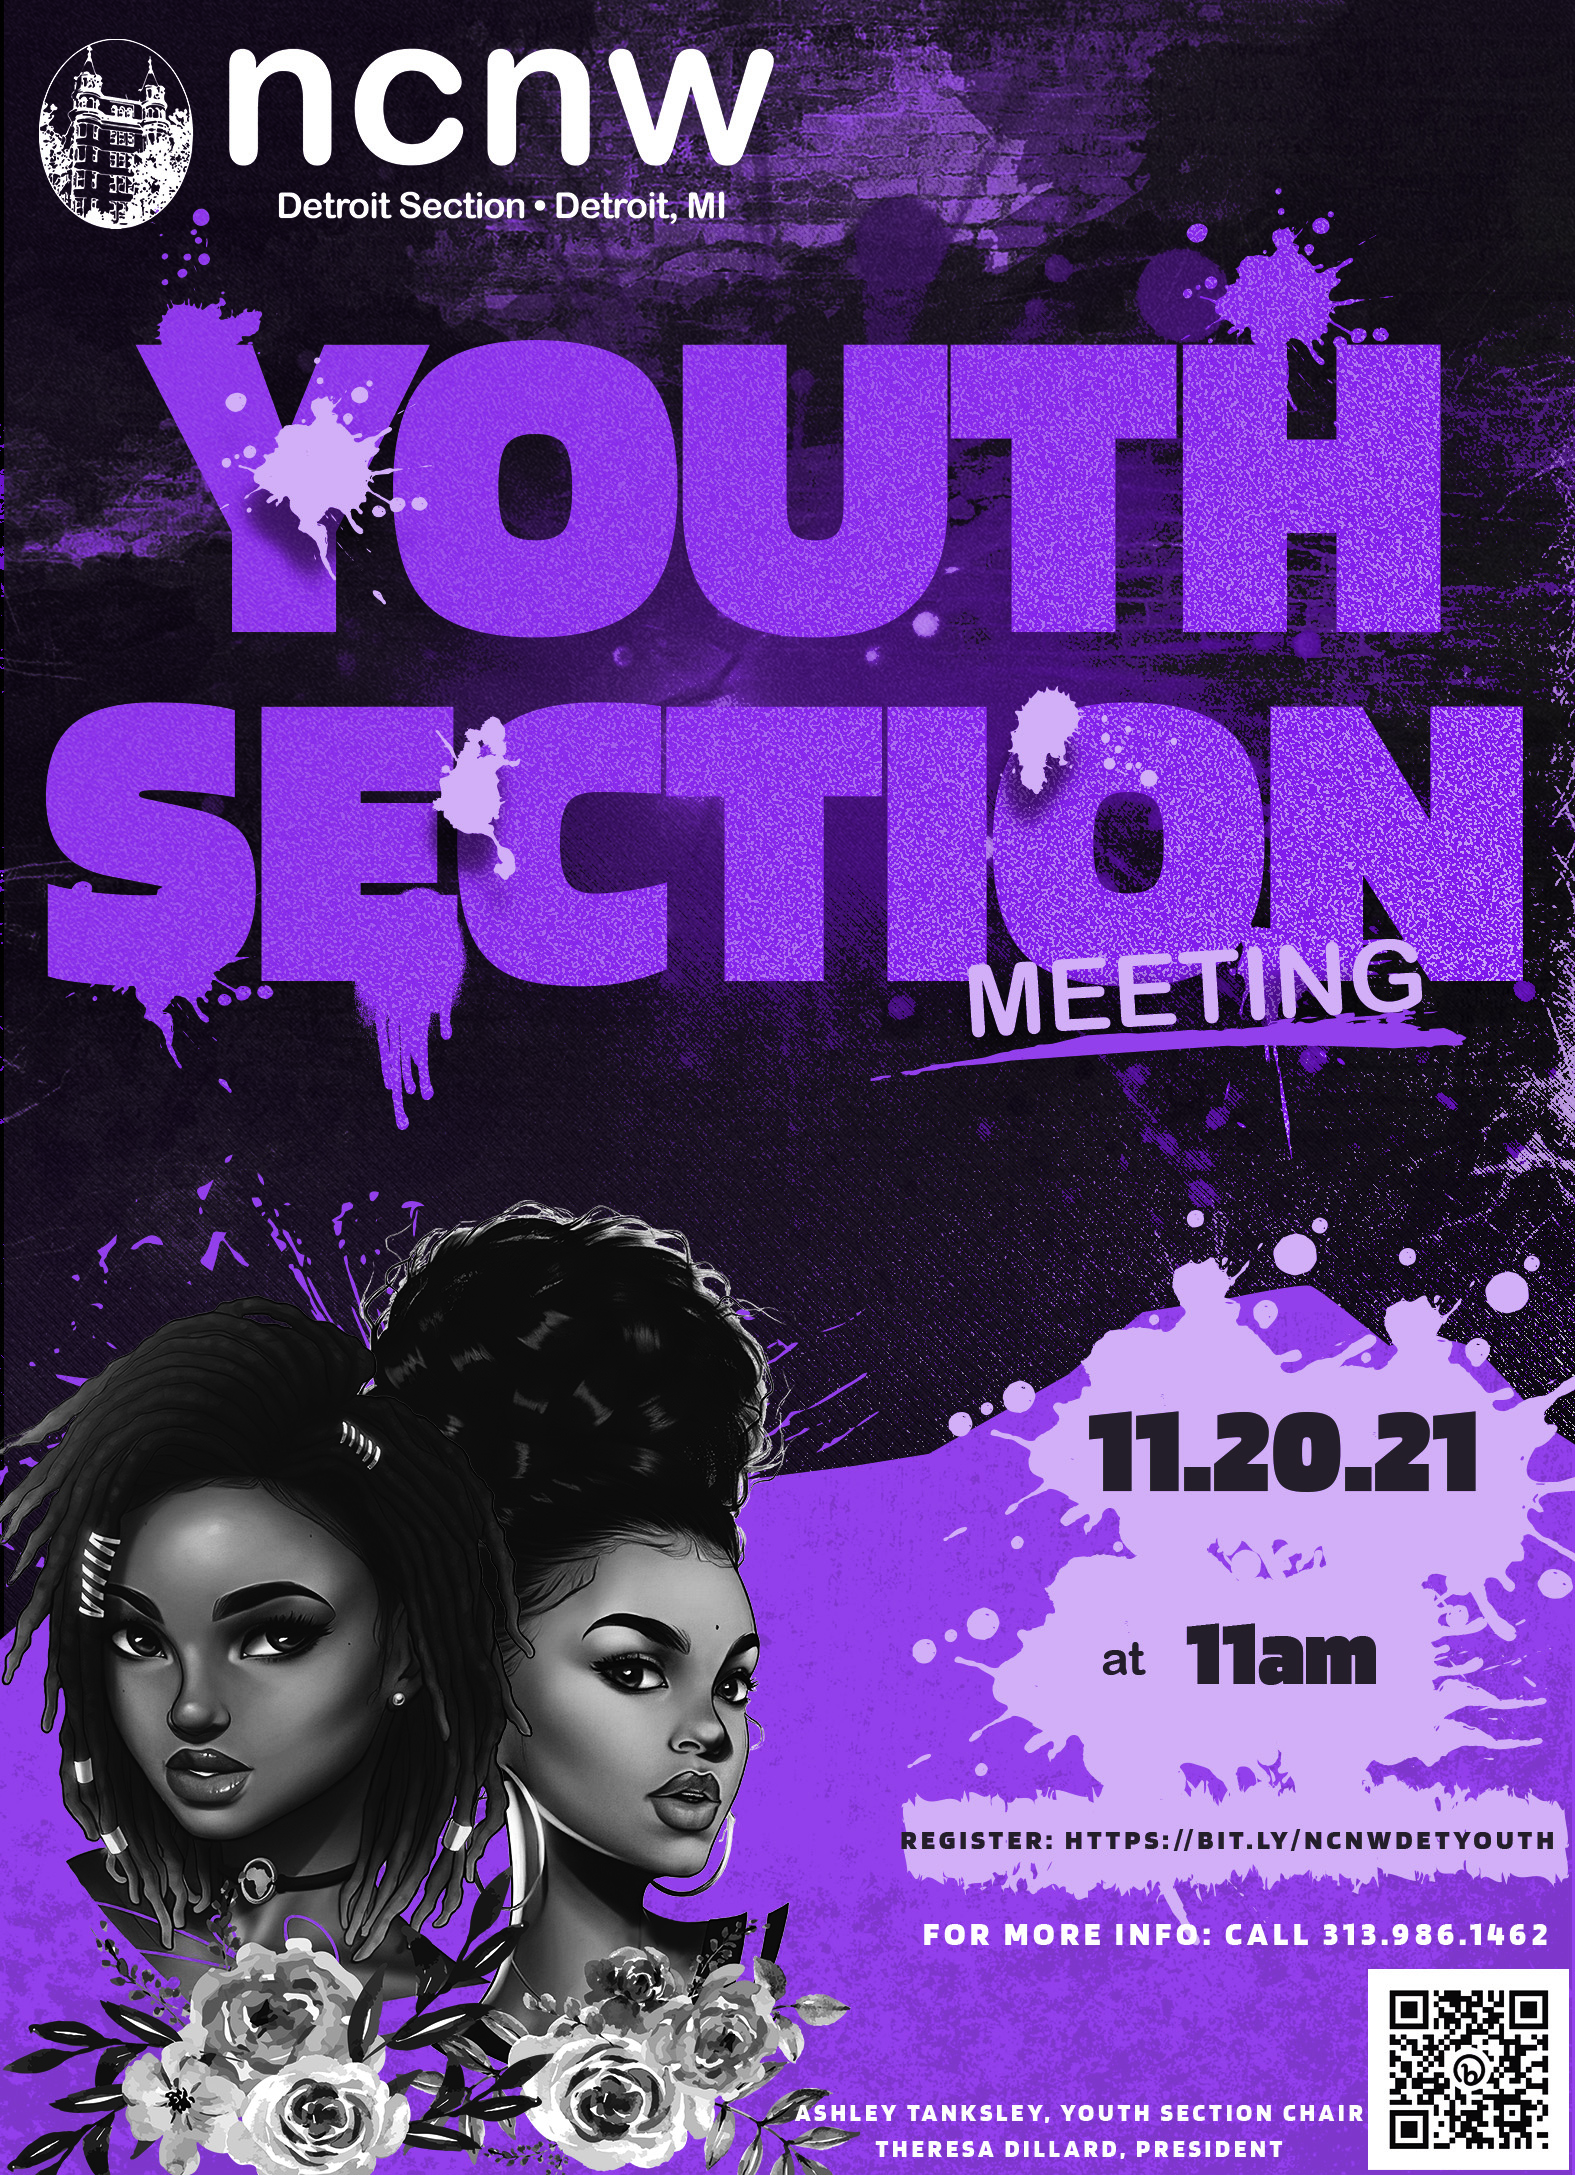 2021 NCNW DET Youth Section Meeting Flyer